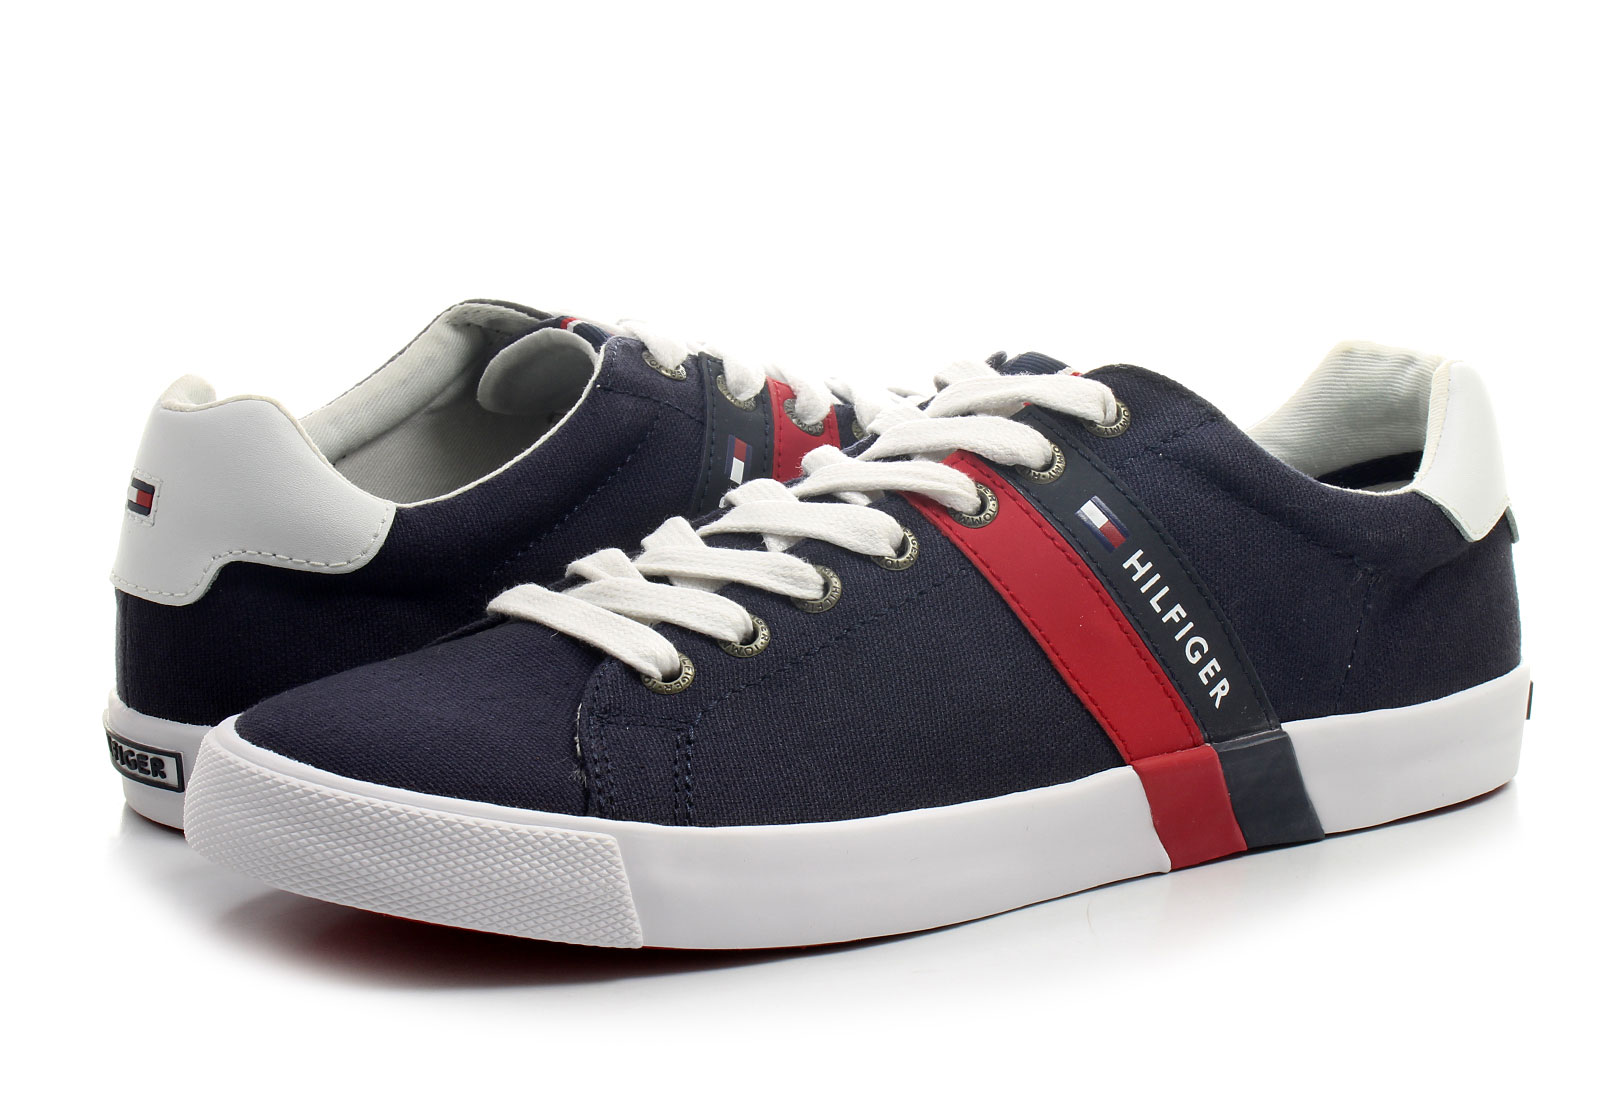 tommy hilfiger shoes volley 5c 16s 0976 403 online shop for sneakers shoes and boots. Black Bedroom Furniture Sets. Home Design Ideas